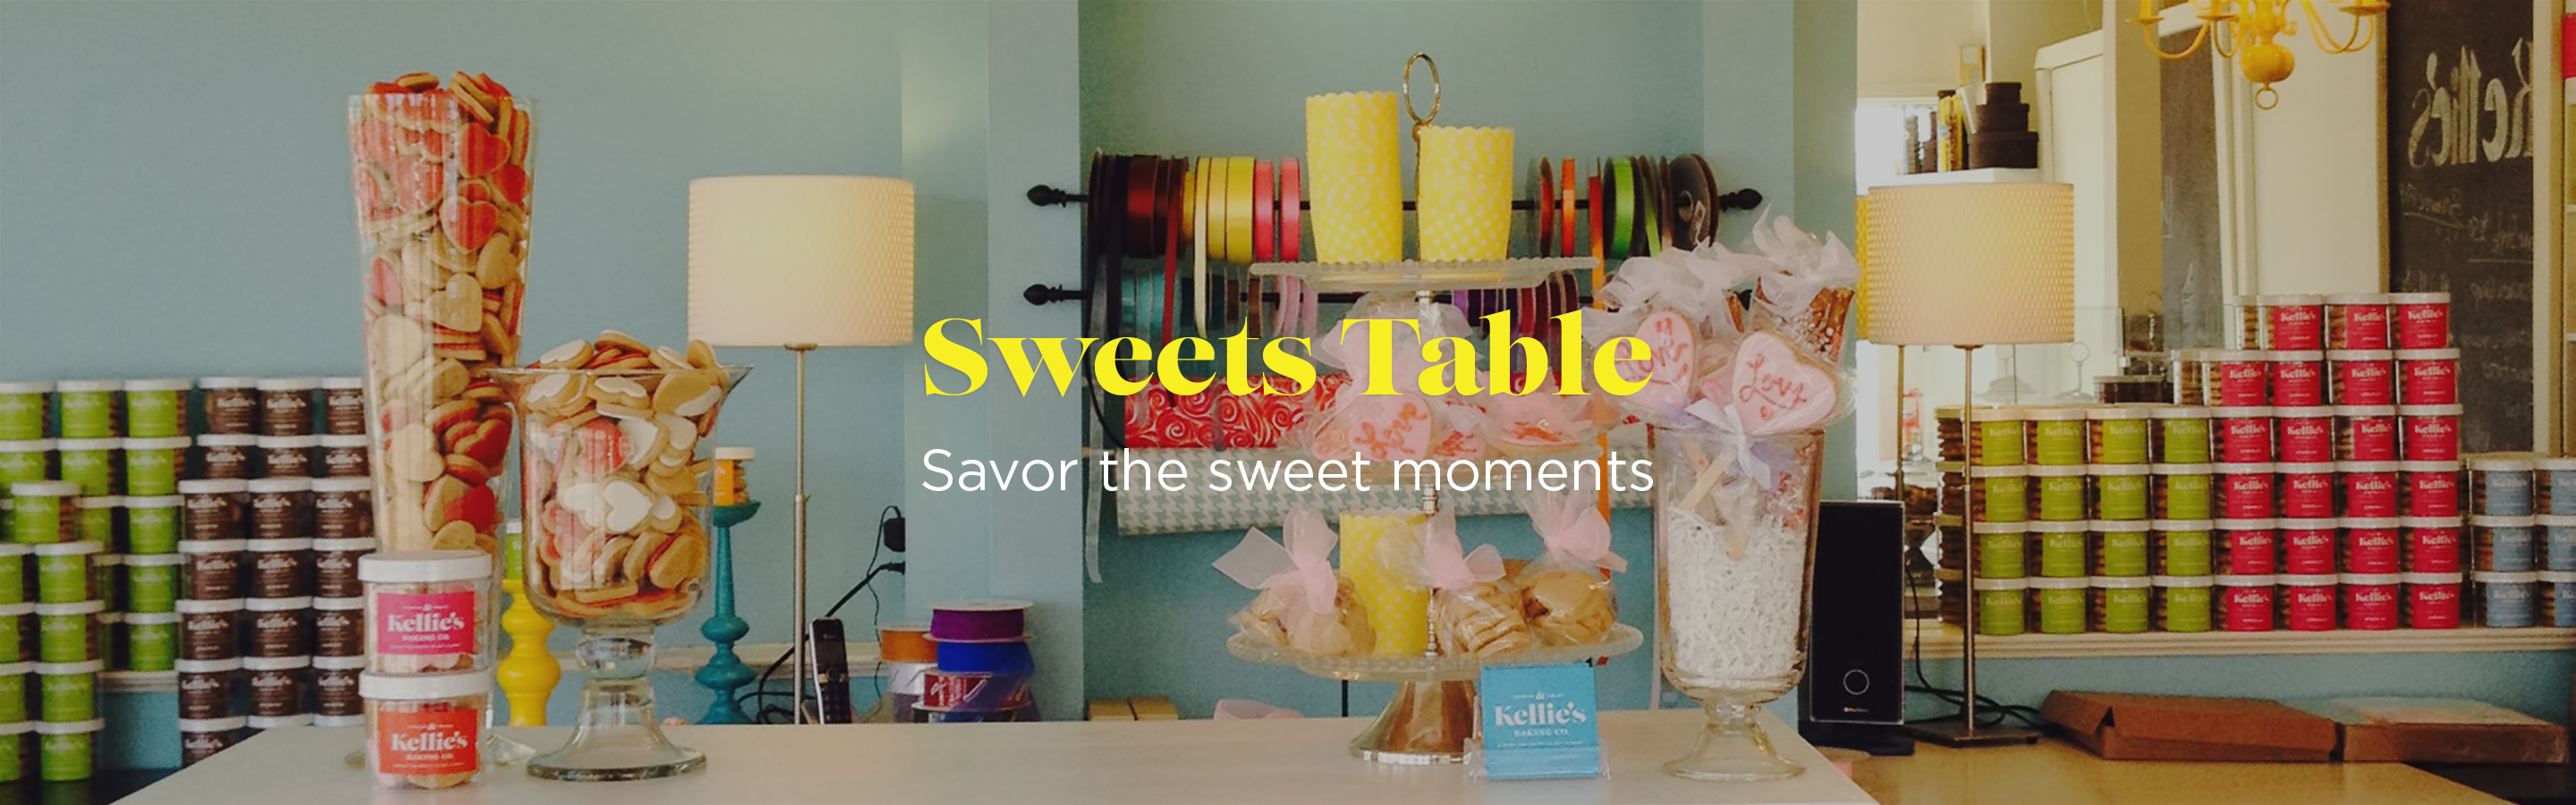 sweets table banner